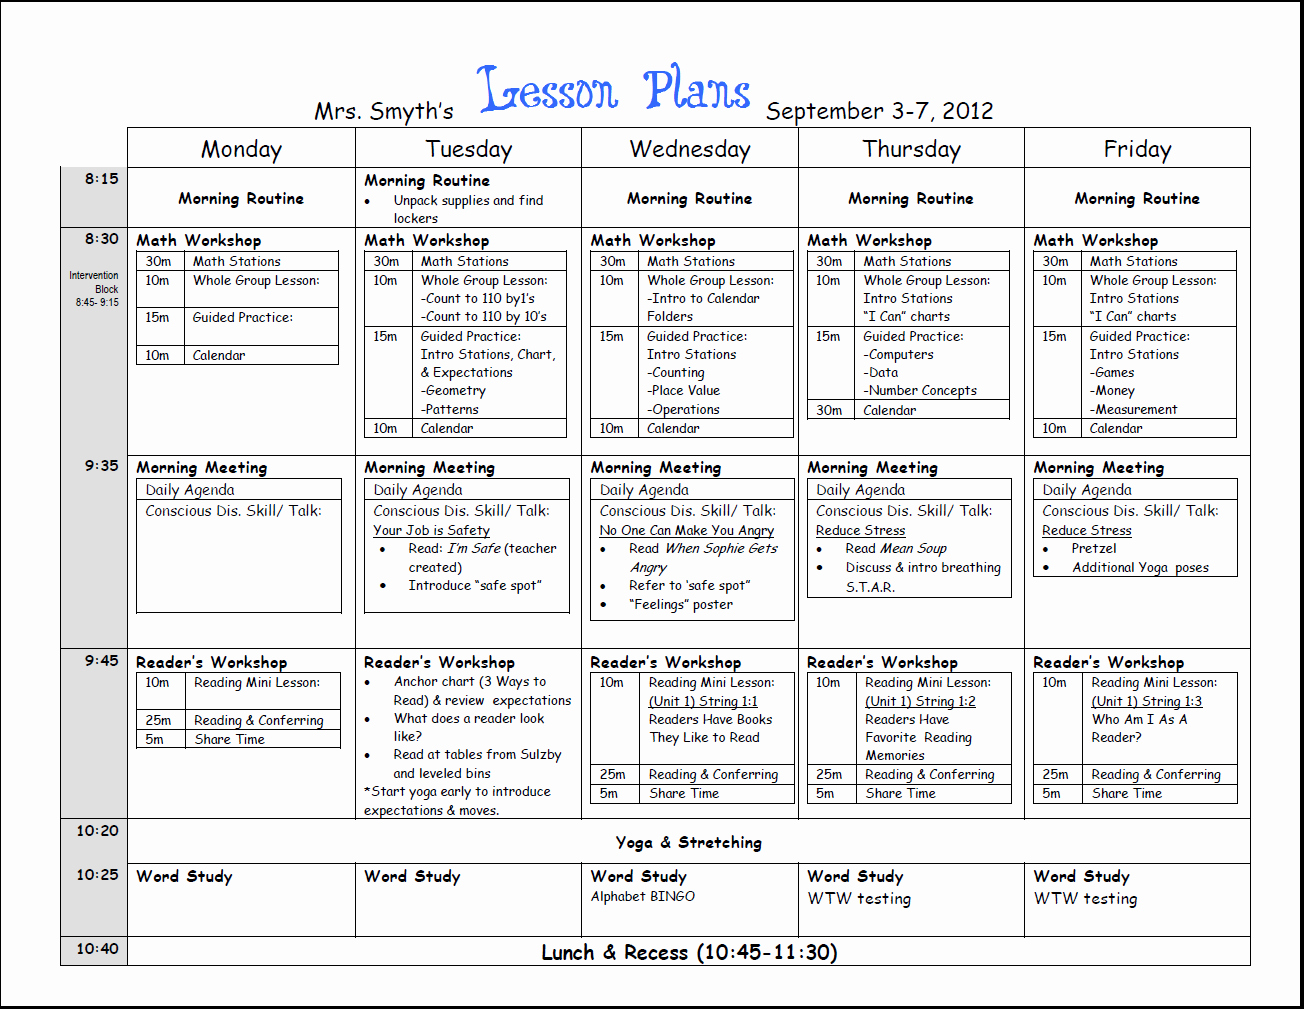 Example Lesson Plan Template Inspirational Free Weekly Lesson Plan Template and Teacher Resources